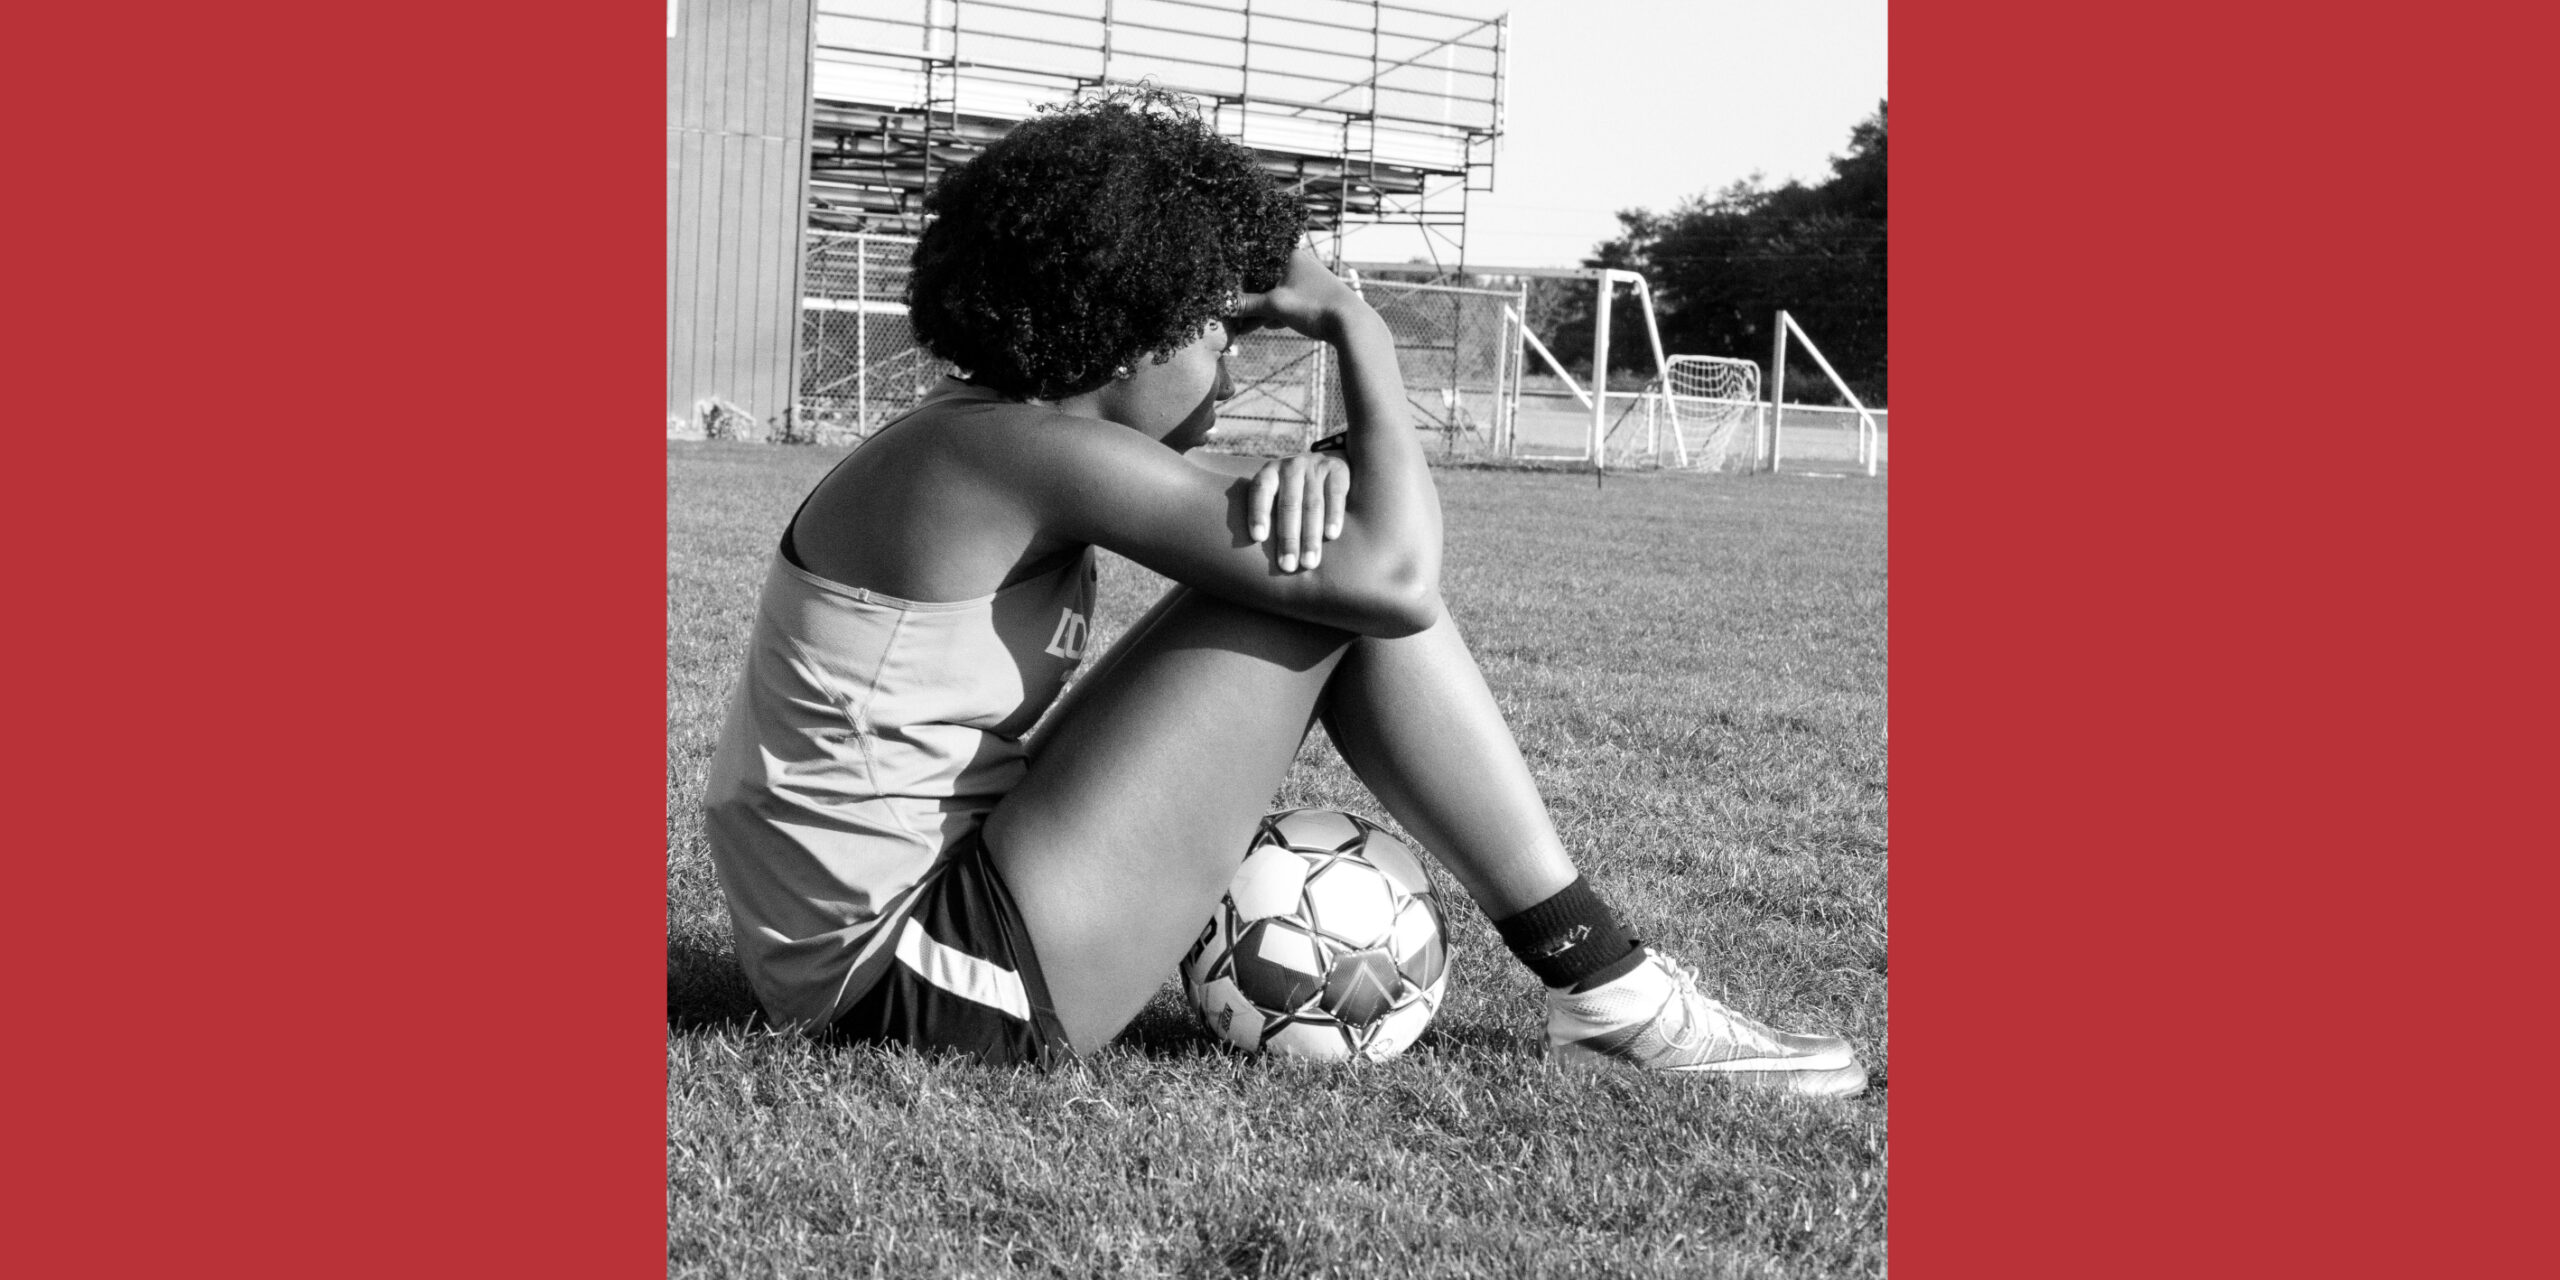 Soccer player on the sideline at practice